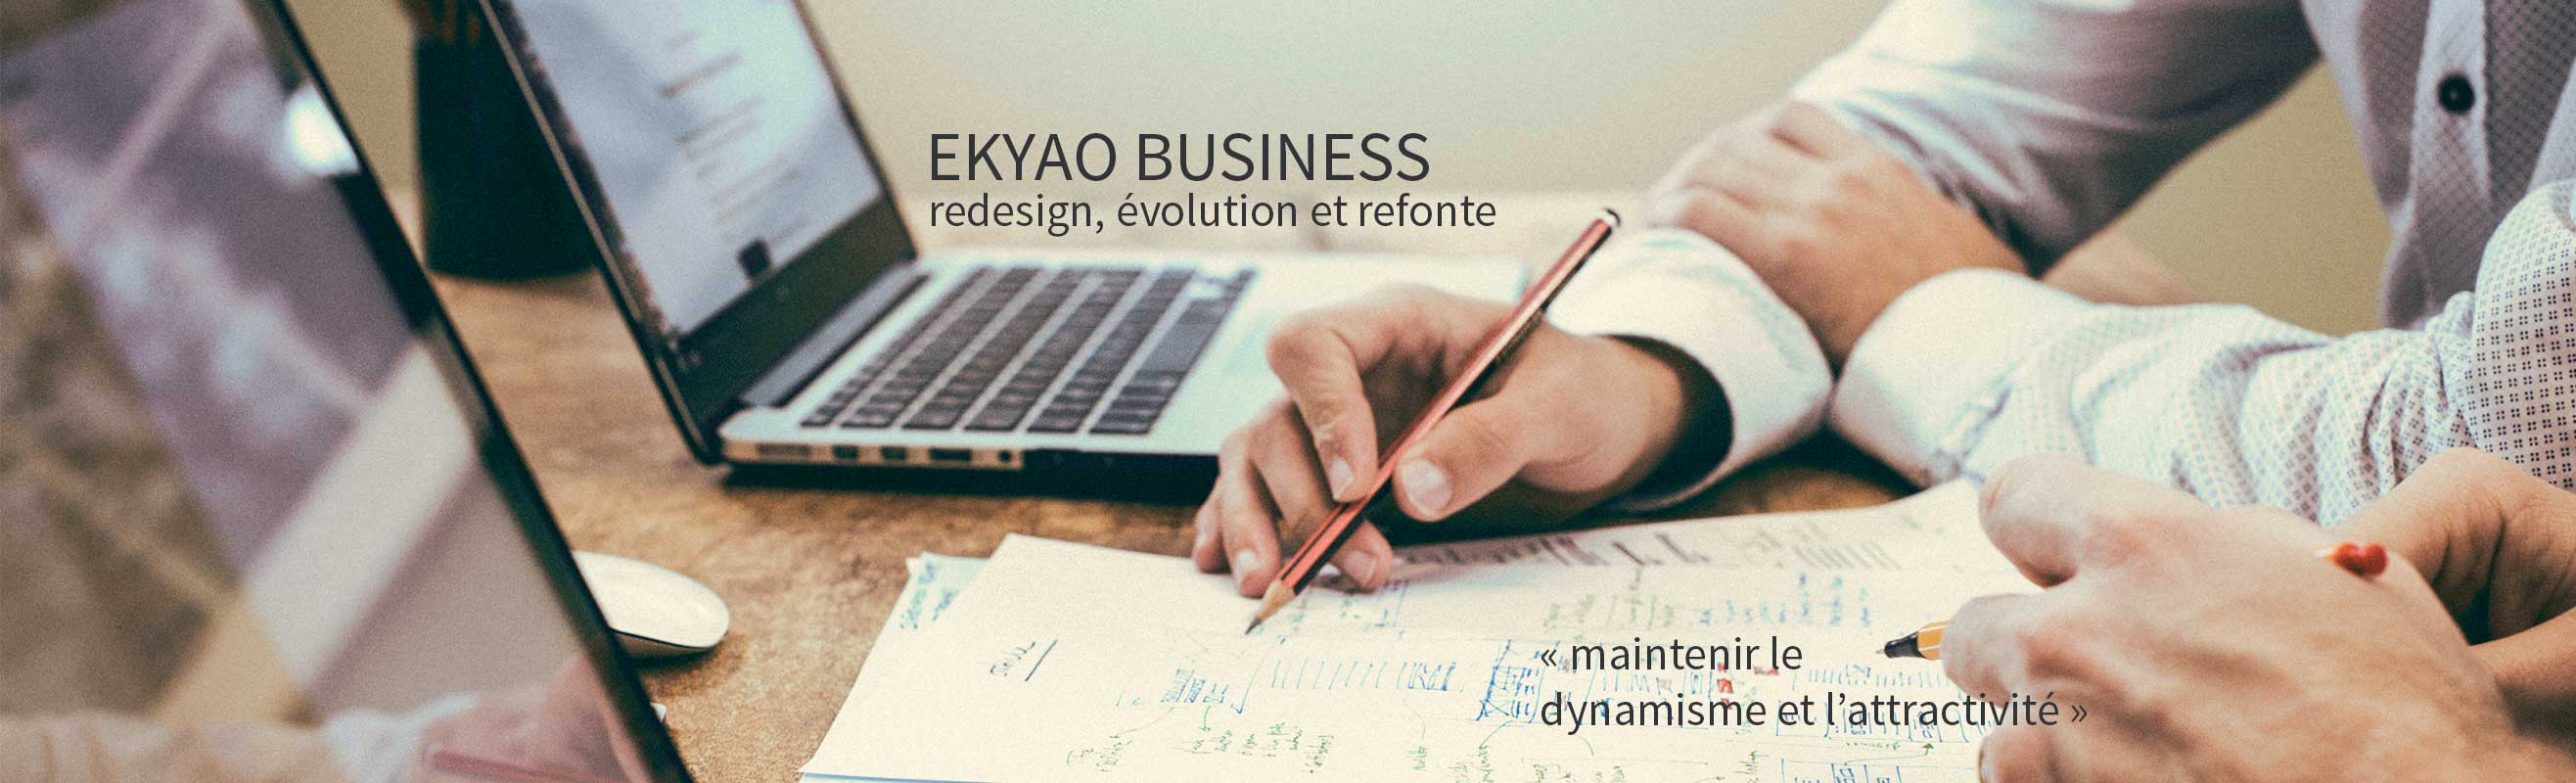 Ekyao Business - Web design. Maintenir le dynamise et l'attractivité